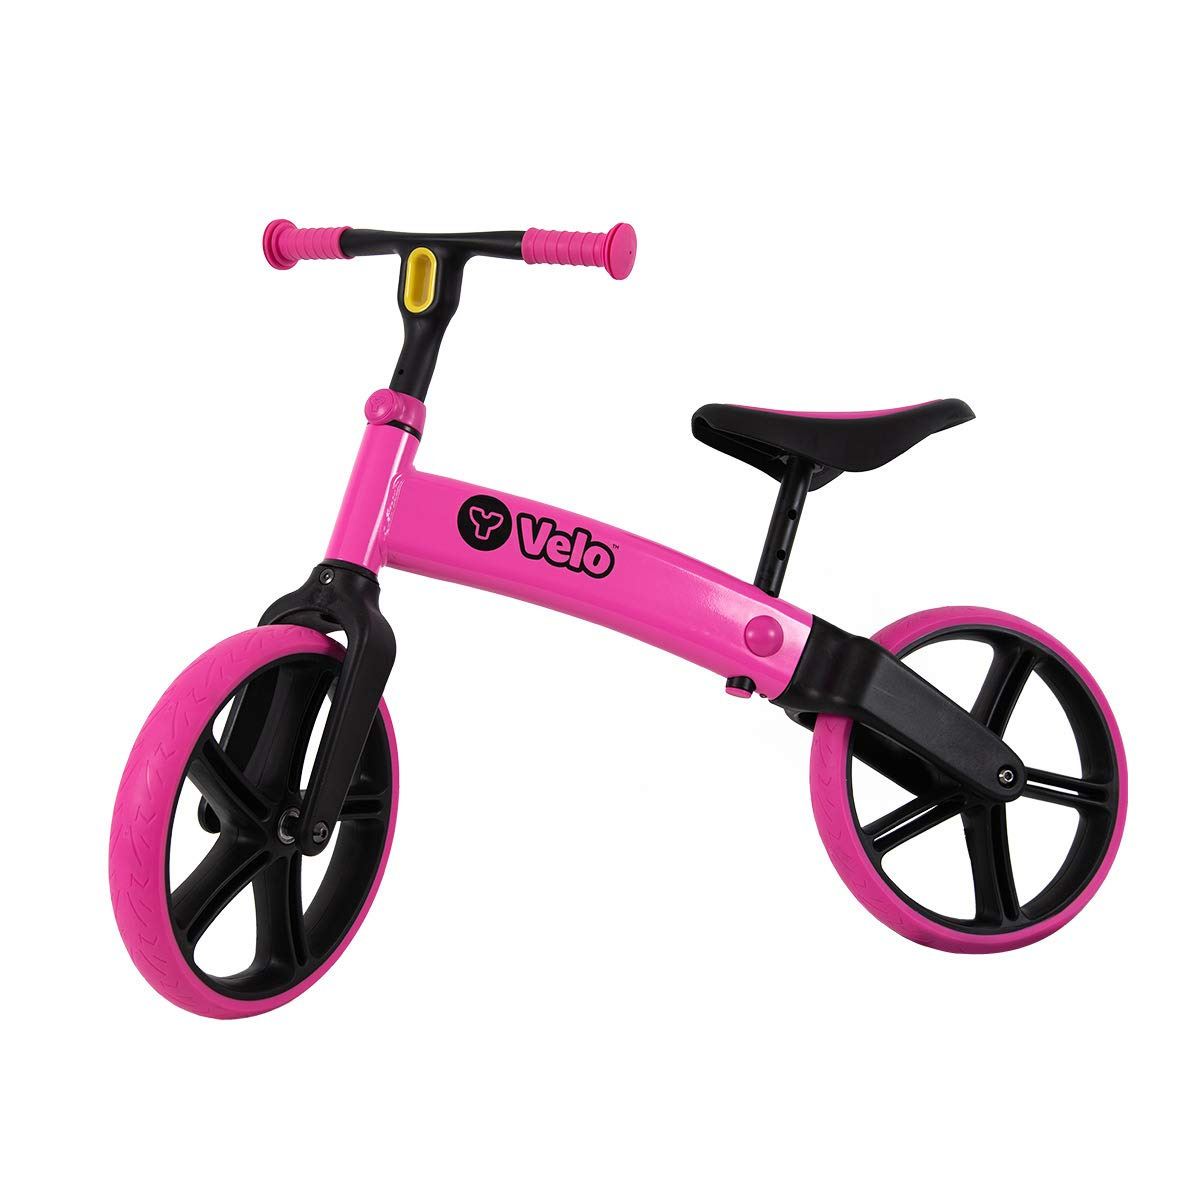 No Pedals Training Bicycle Ages 3 to 5 Years Old Yvolution Y Velo Senior Balance Bike for Kids